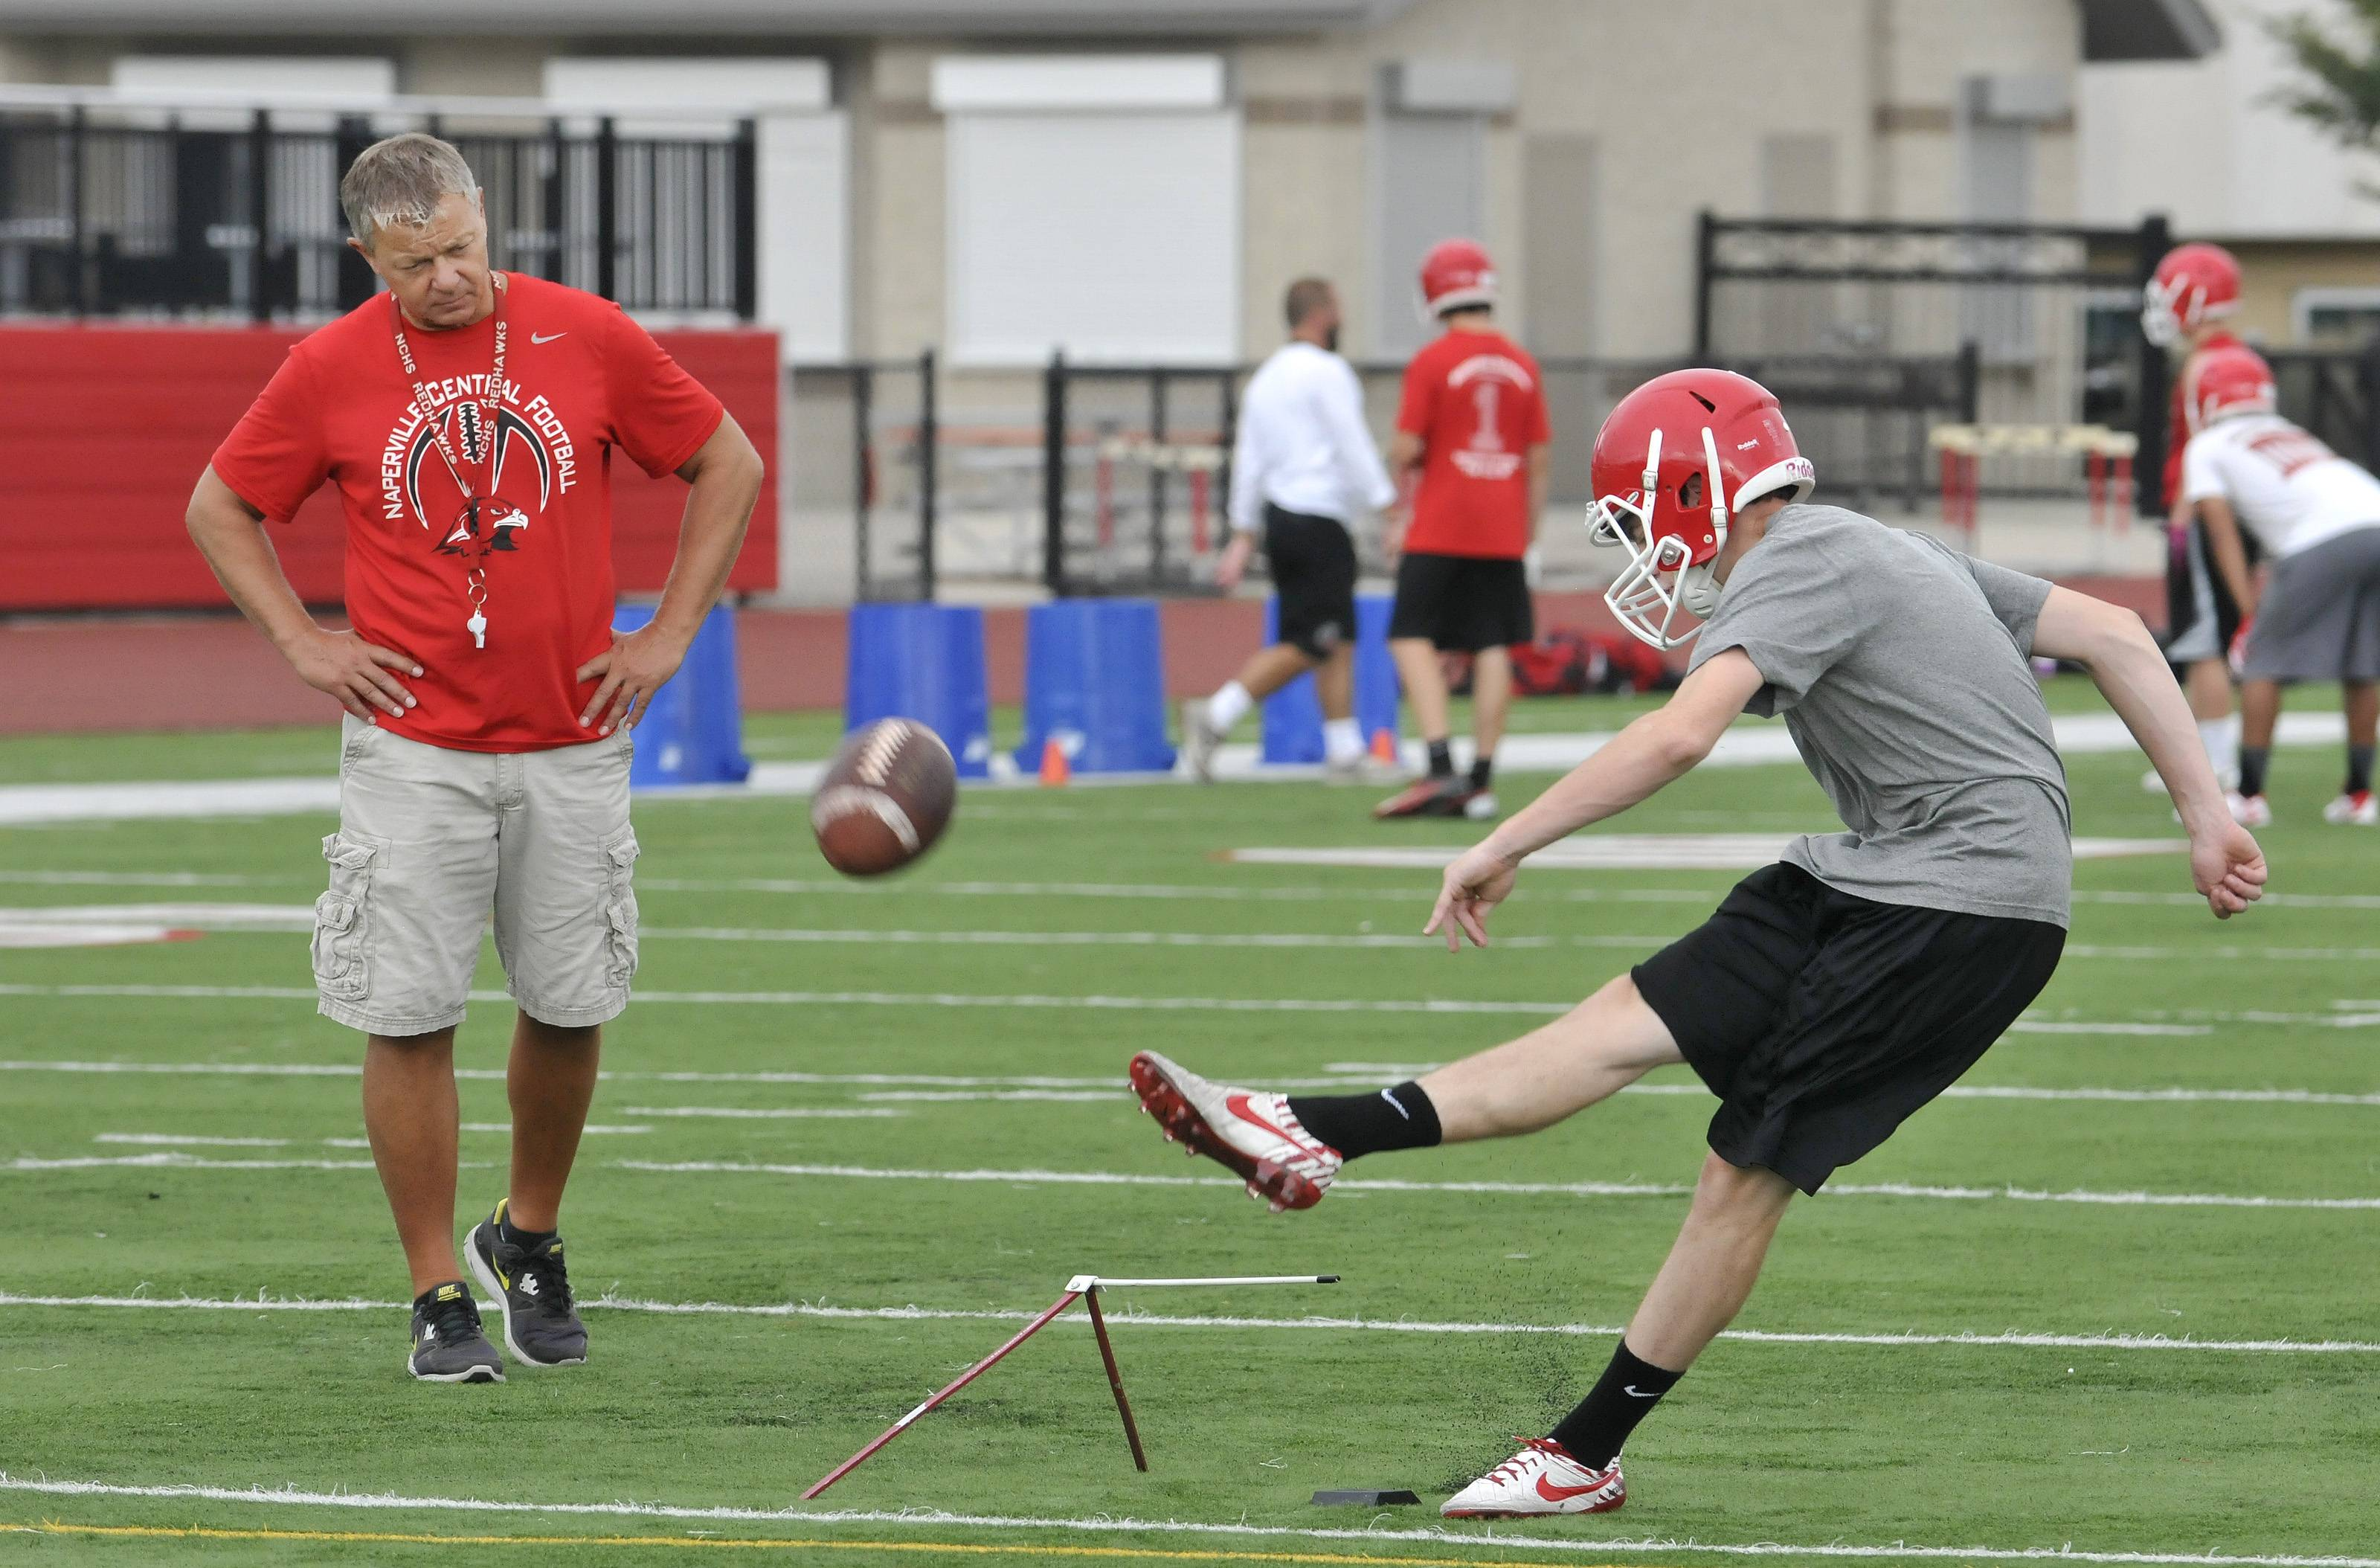 Naperville Central High School's football team works Monday out on the first official day of practice. Head coach Mike Stine watches kicker Connor Assalley practice field goals.